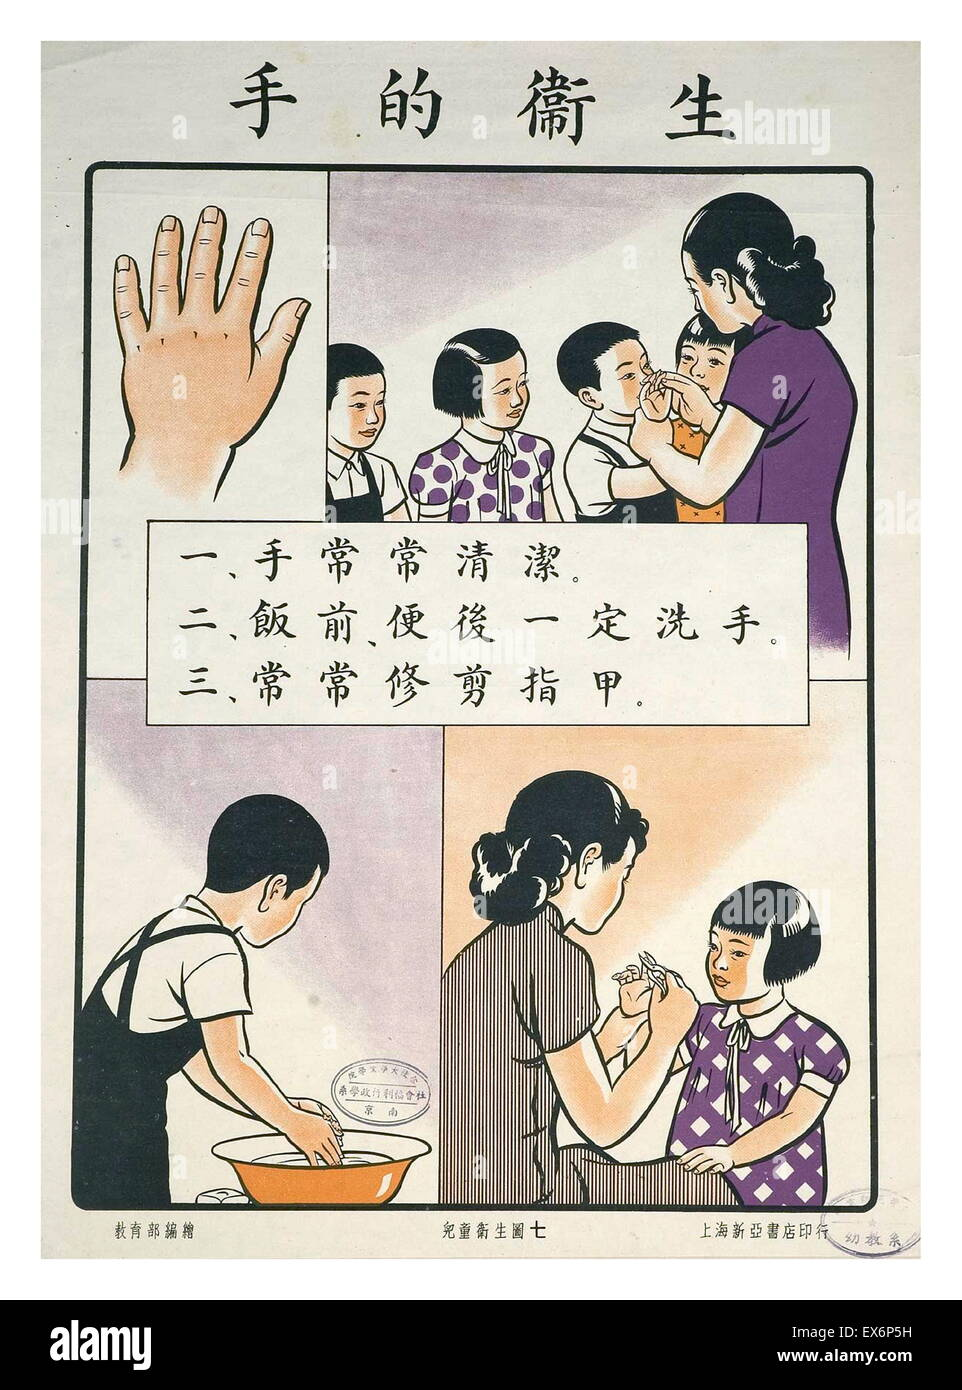 Chinese Ministry of Education public health poster 1935. Hands hygiene - wash hands clean, wash before meals and Stock Photo